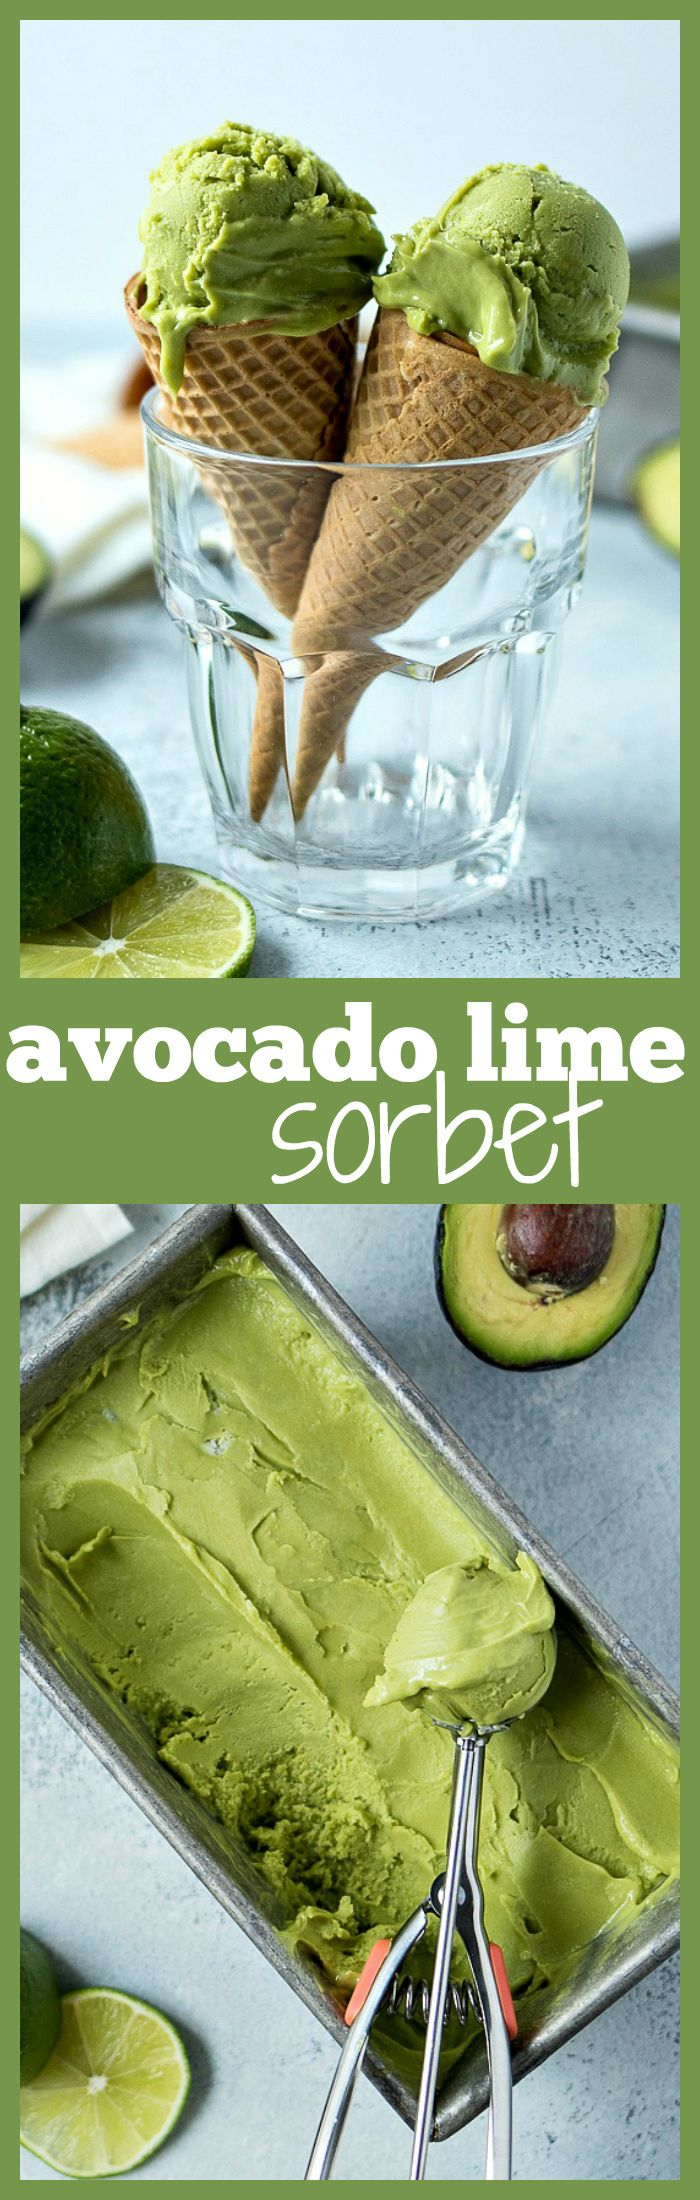 Avocado Lime Sorbet – Made with only three ingredients, this avocado lime sorbet is shockingly refreshing and unbelievably creamy. It's going to be your new favorite summer treat!